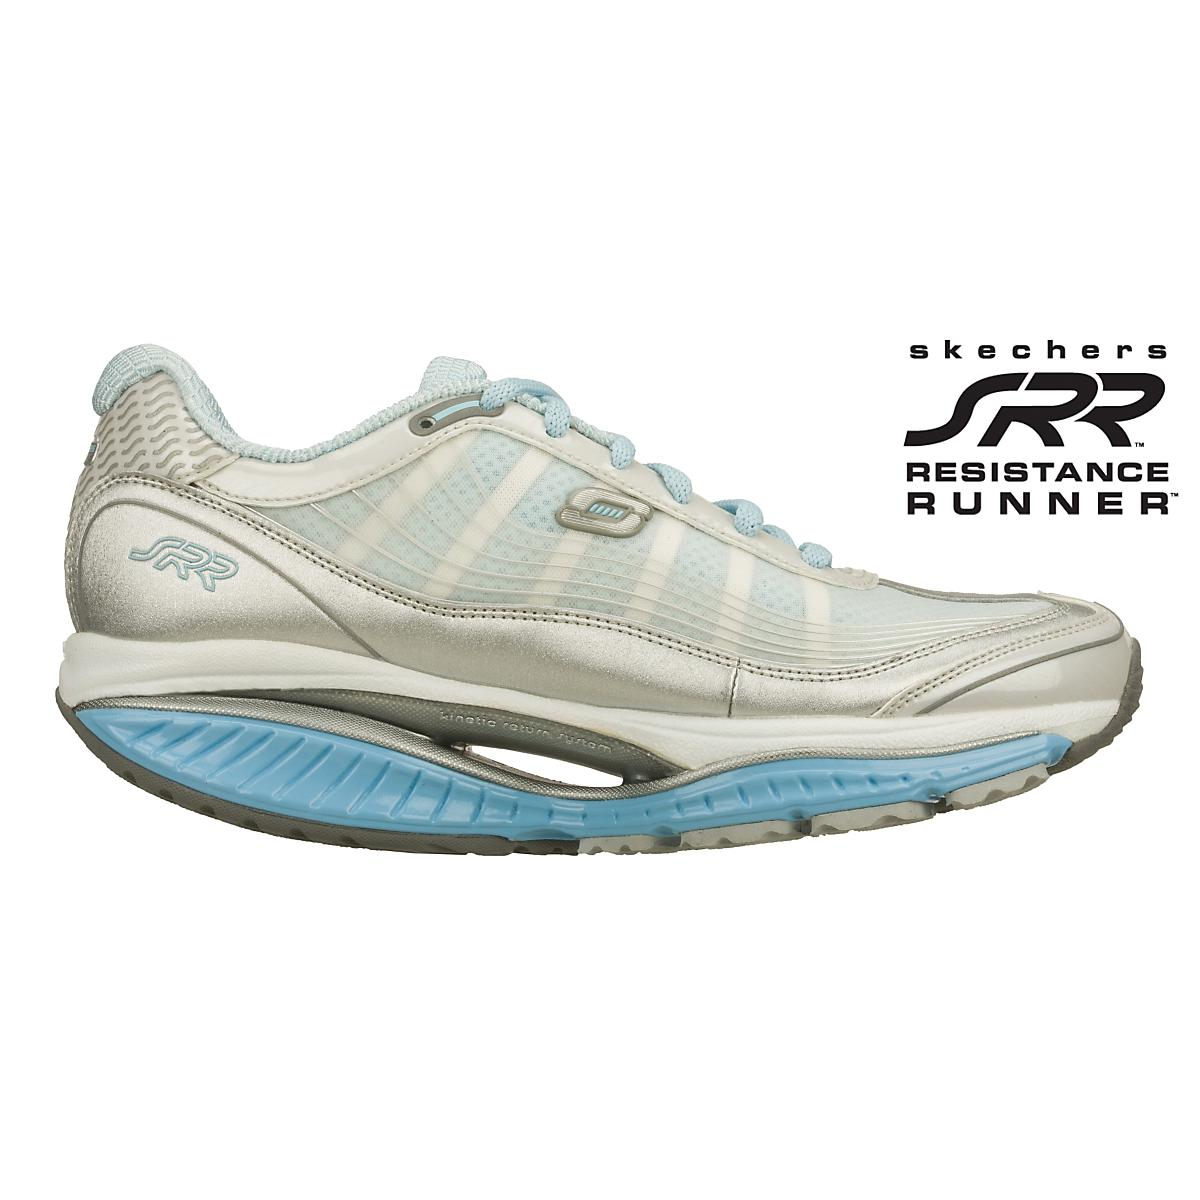 f981b2228e6a Womens Skechers Resistance Runner - Resistor Toning   Fitness Shoe at Road  Runner Sports